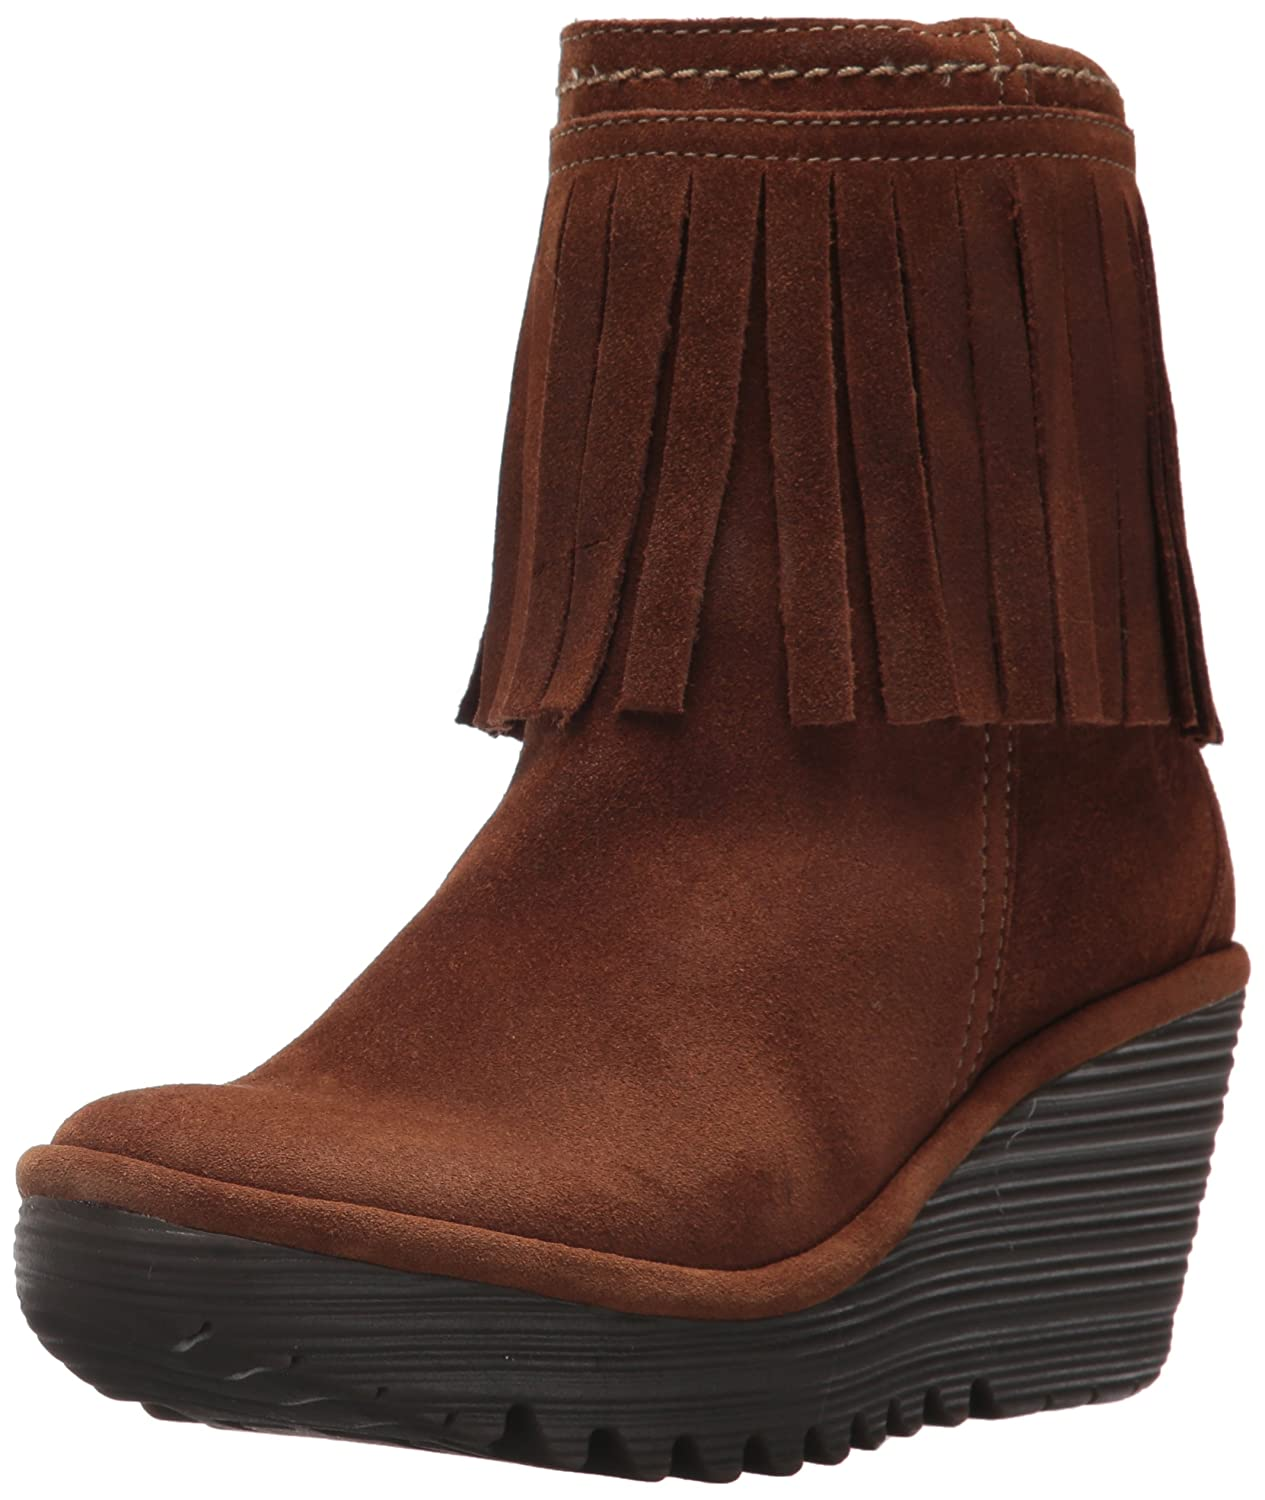 - Fly London Women's YAGI766FLY Boot, Camel Oil Suede, 38 M EU (7.5-8 US)